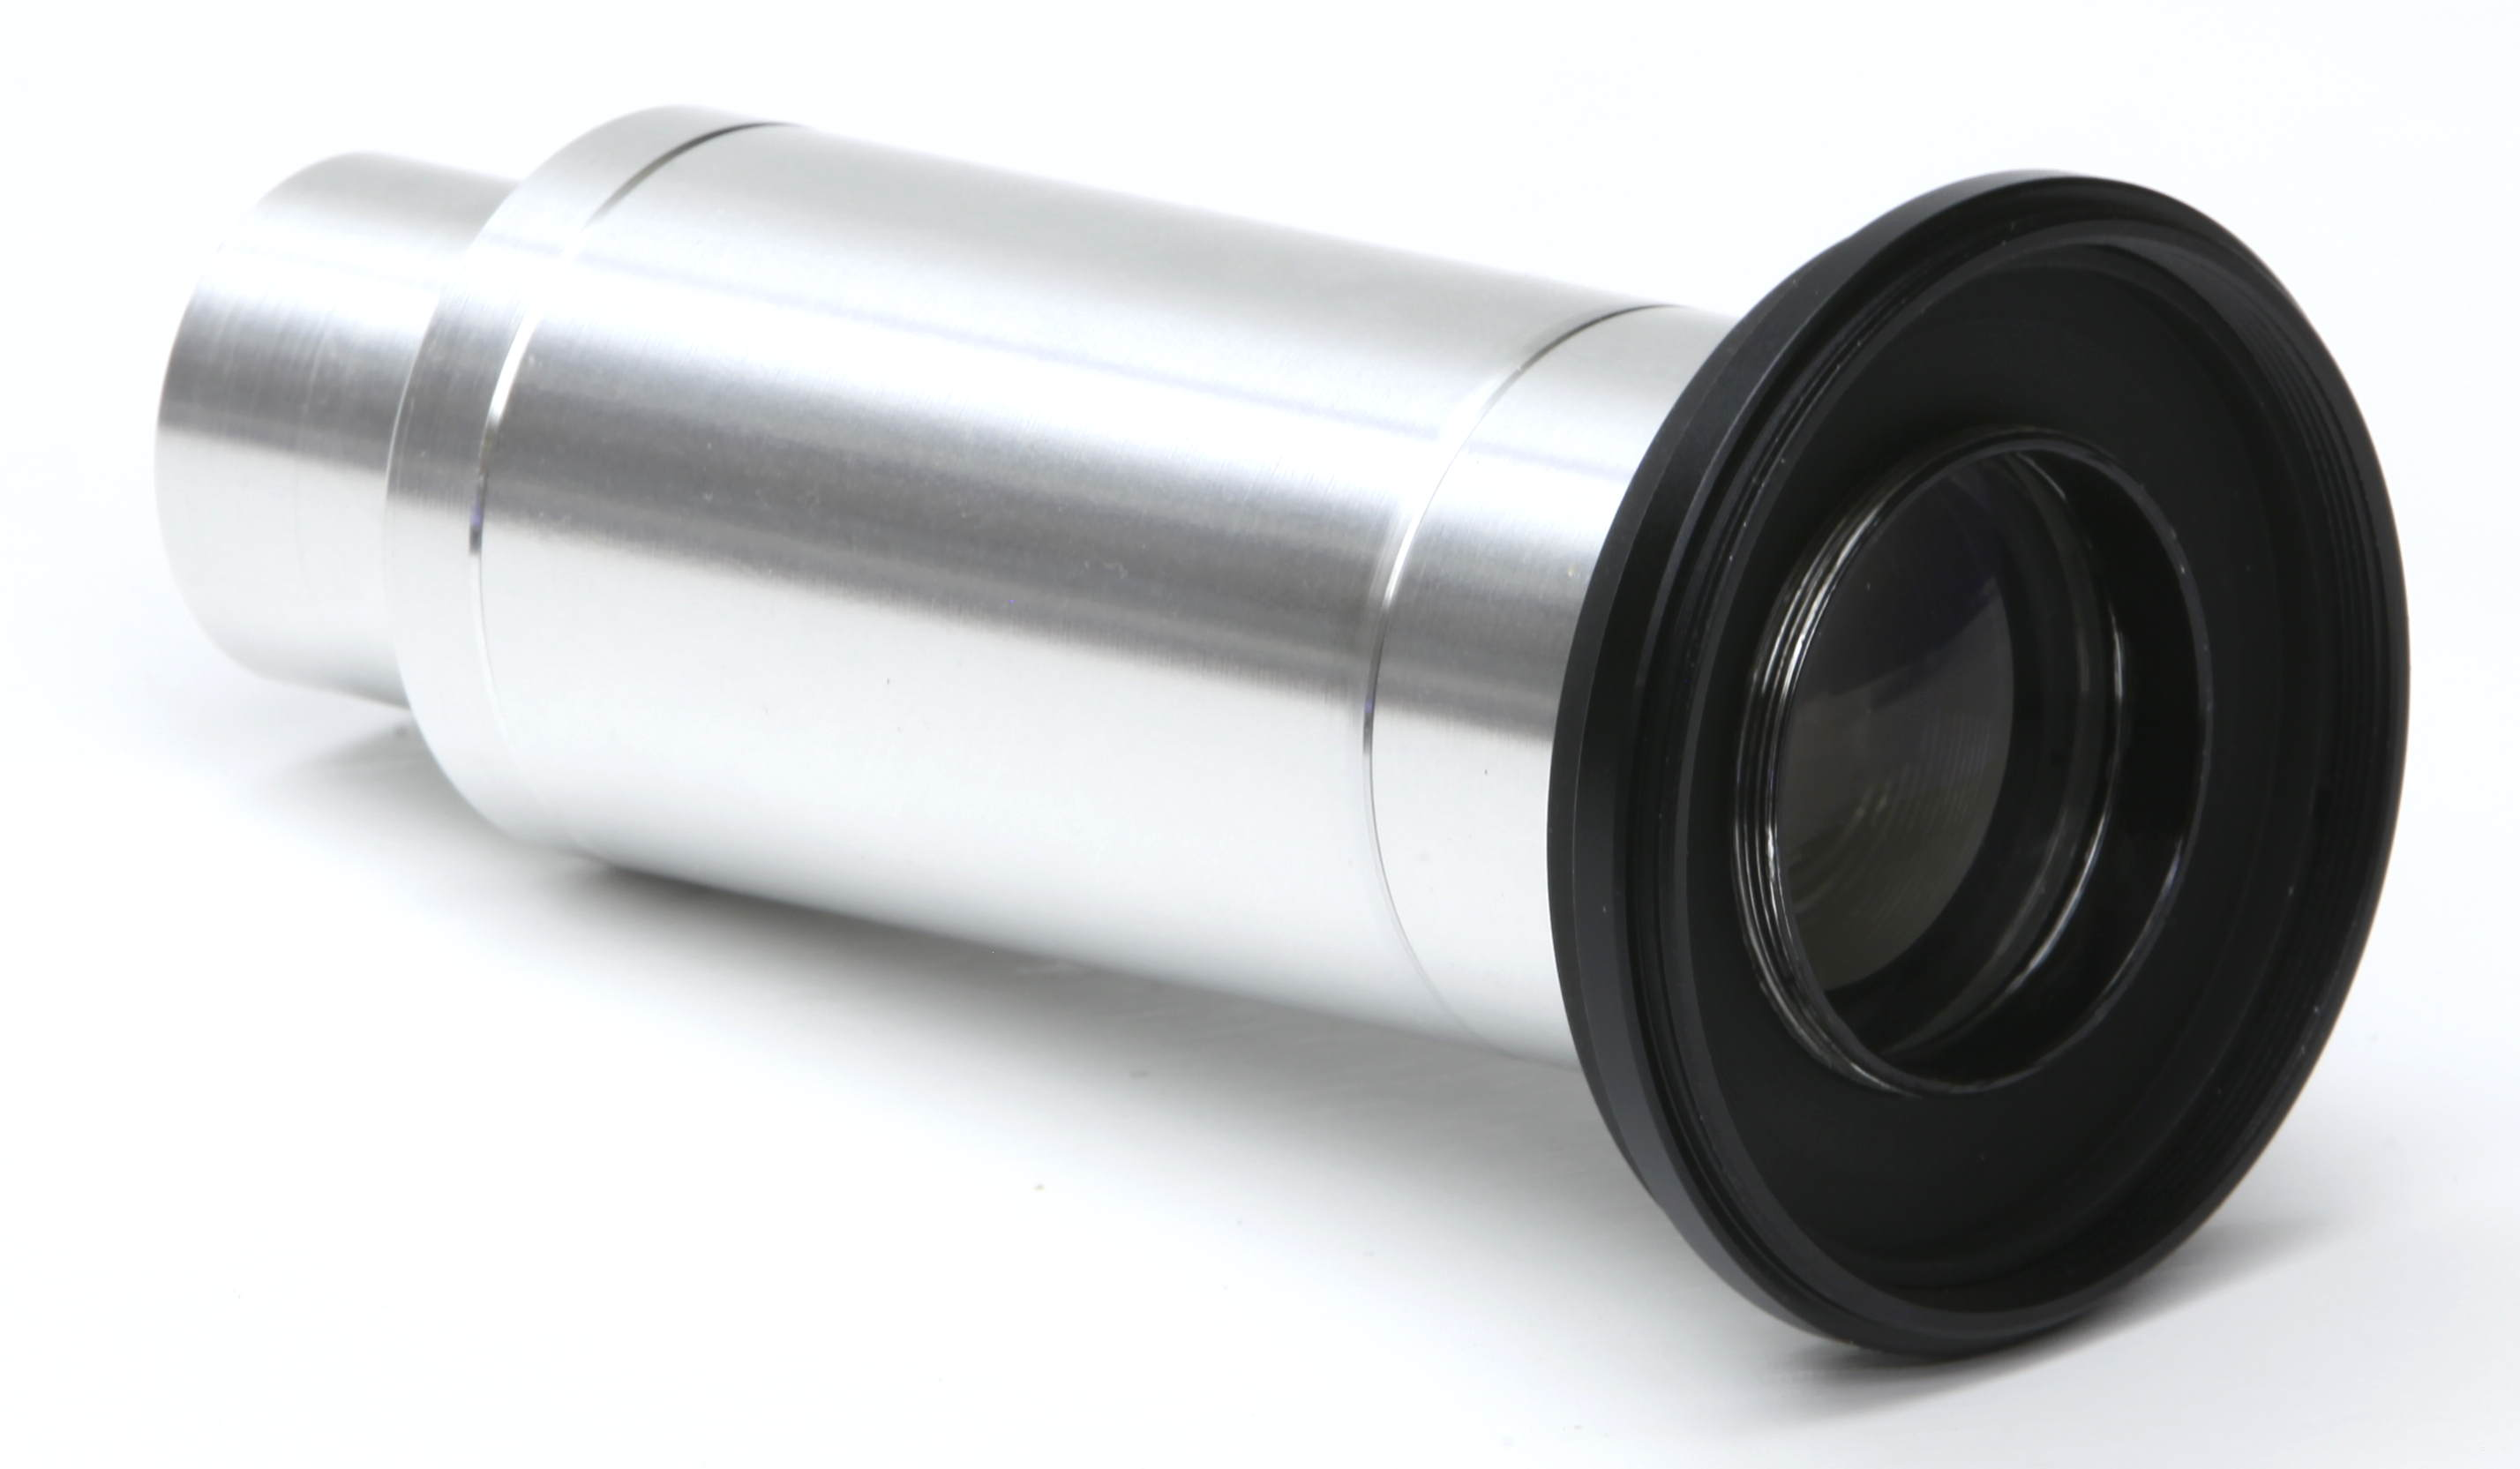 Microscope adapter for cameras and camcorders with large lenses